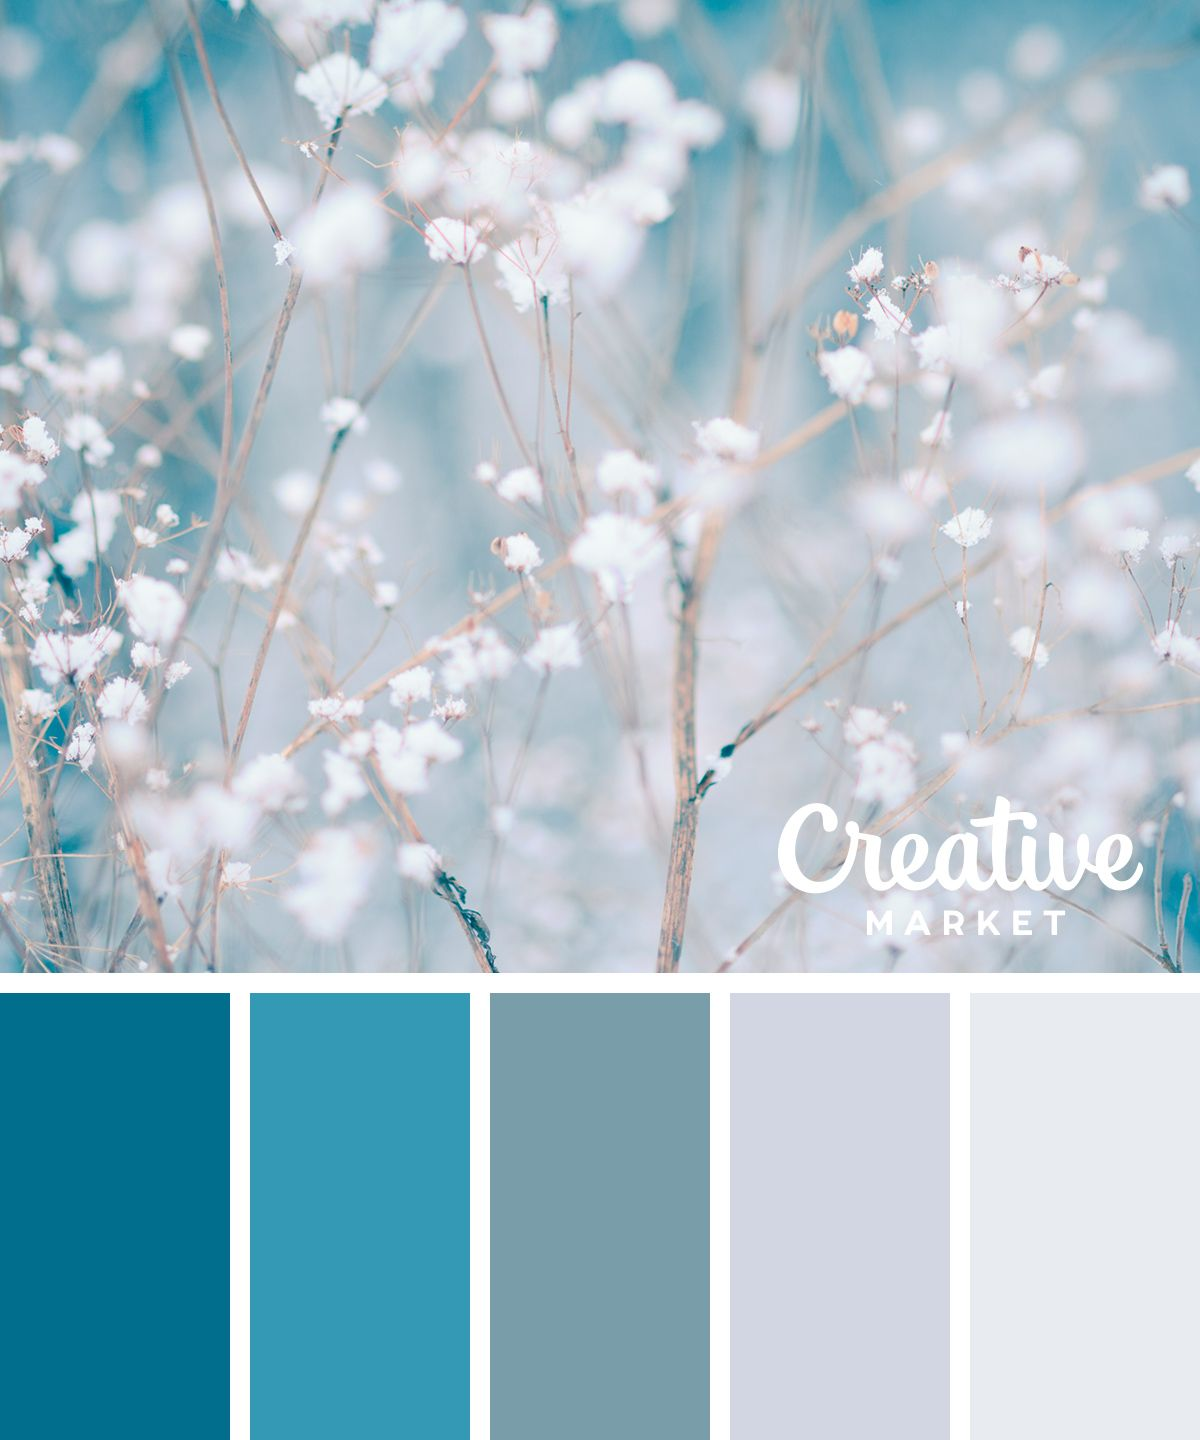 47 Farben Wände Ideen Farbpaletten: 15 Downloadable Color Palettes For Winter